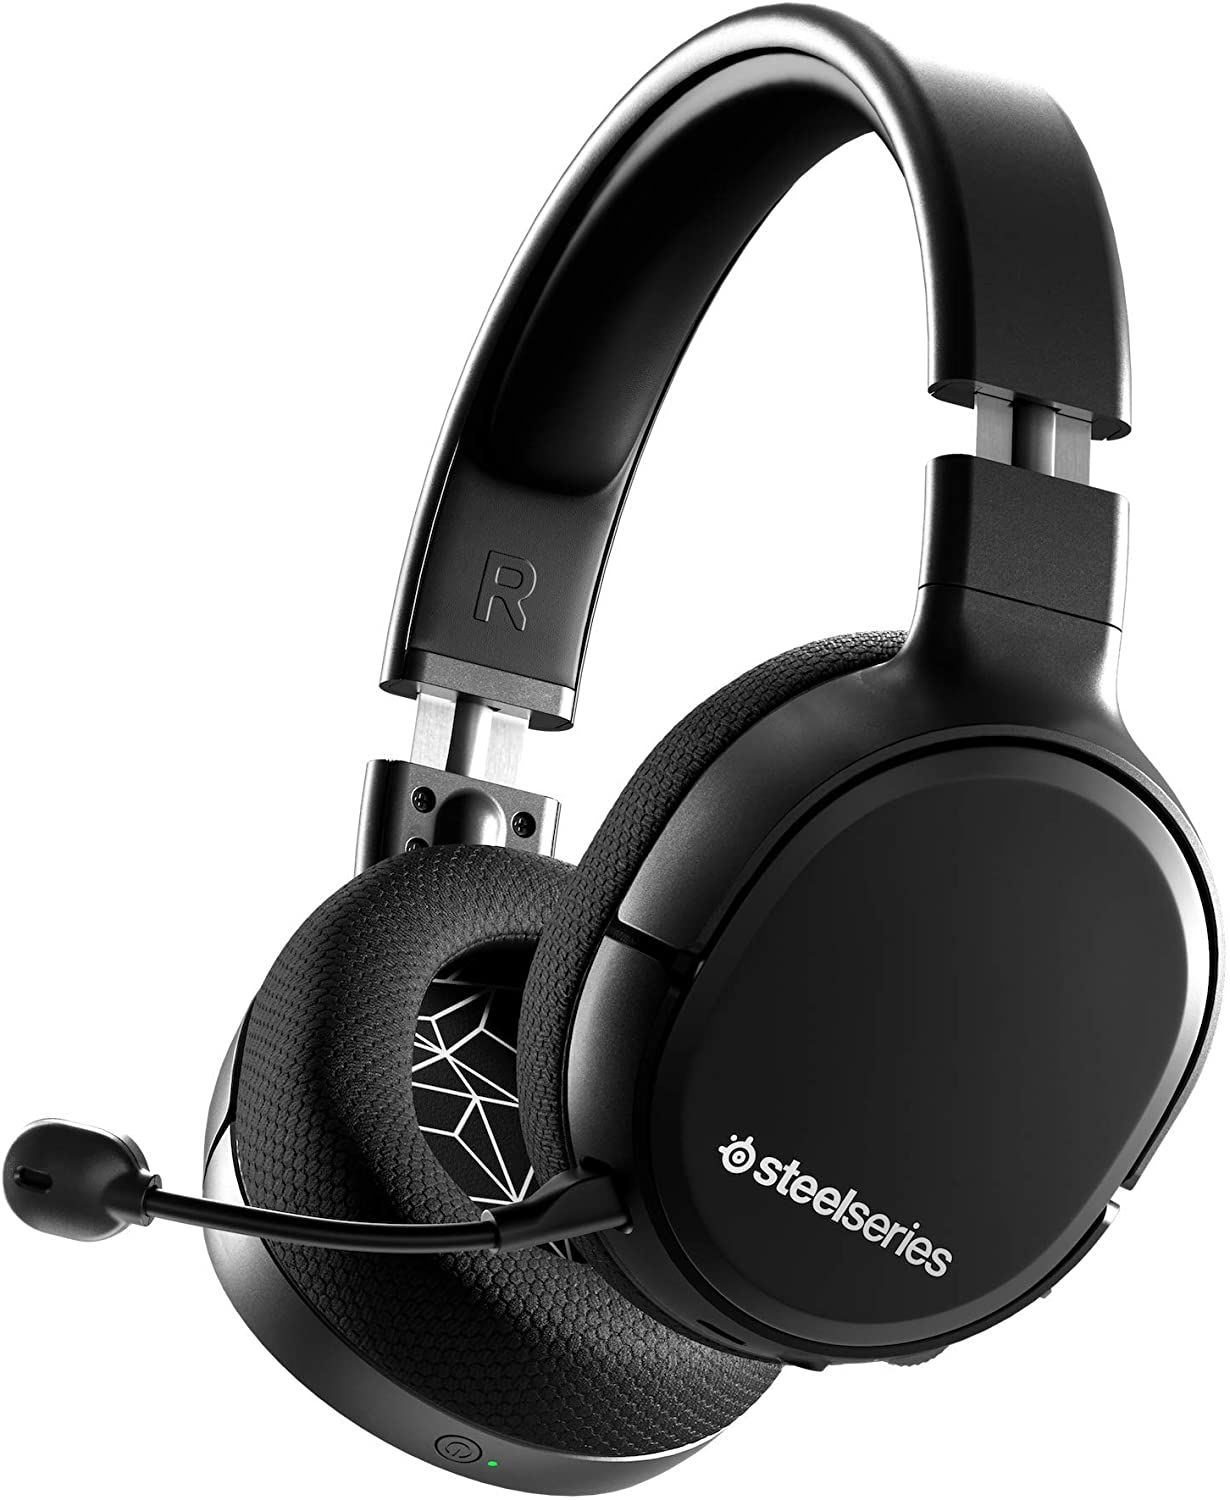 The Best Gaming Headsets In 2020 Ez Gaming Gear Shop Ez Gaming Gear Shop In 2020 Gaming Headset Wireless Gaming Headset Best Gaming Headset